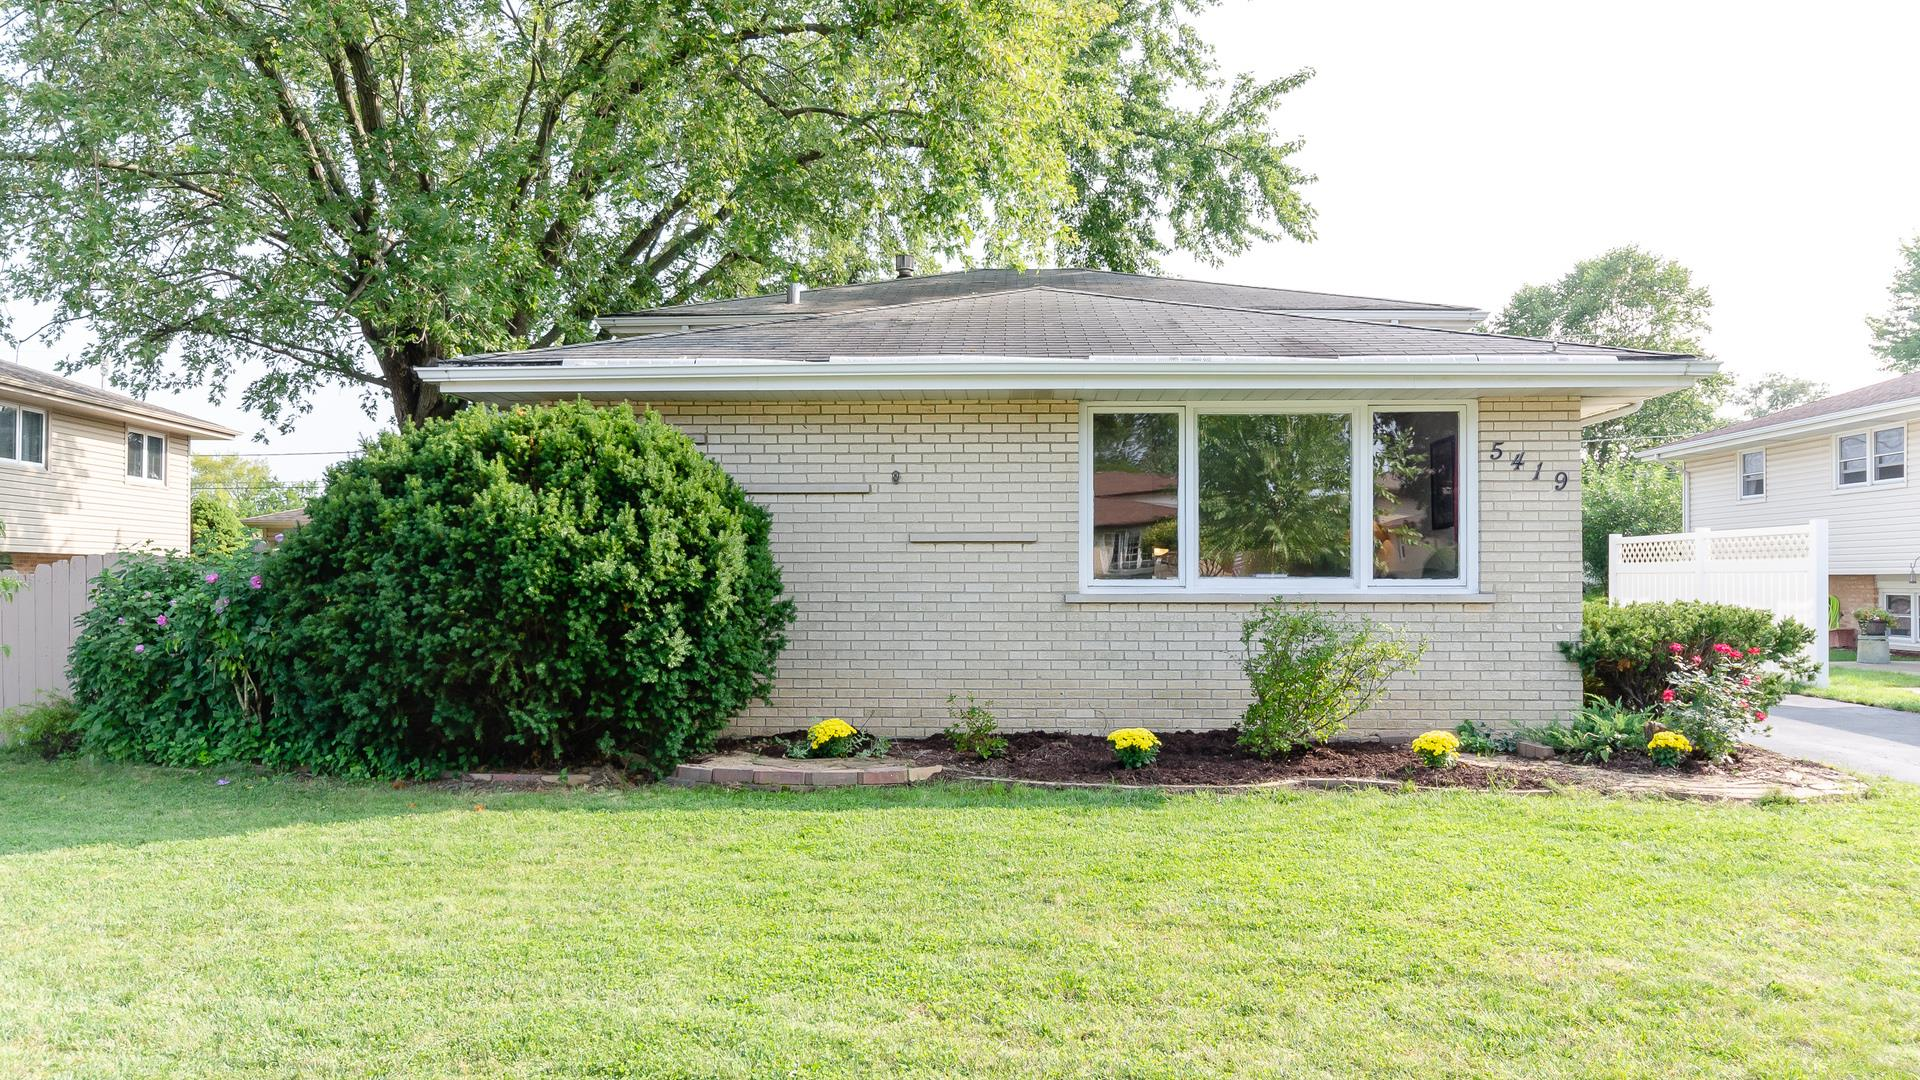 5419 128th Place, Crestwood, IL 60418 - #: 10942147